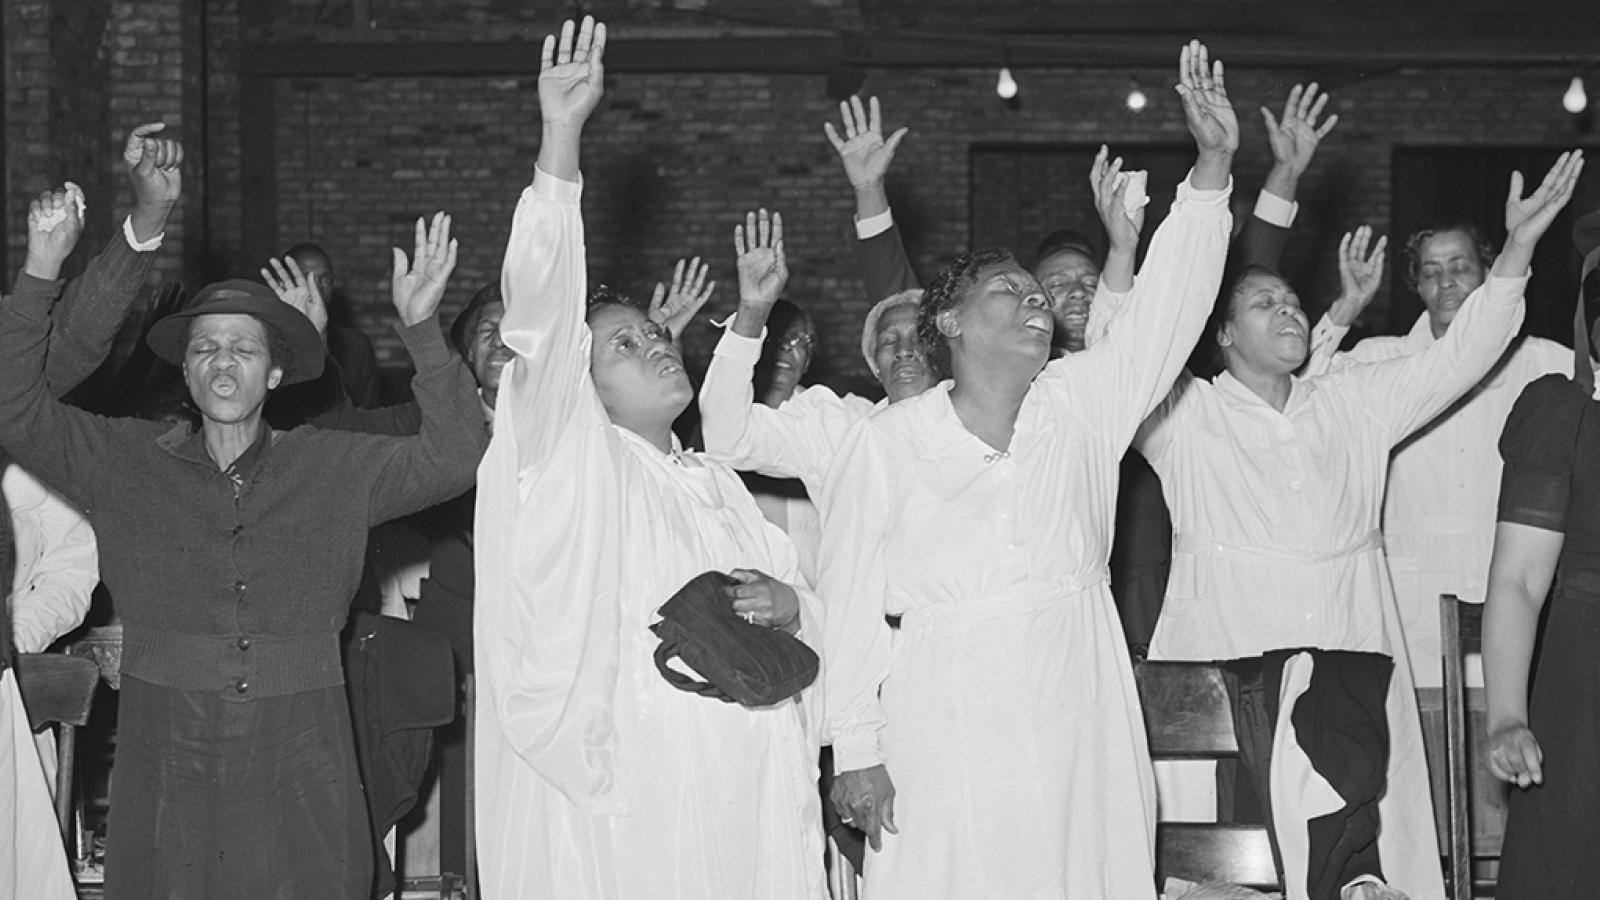 Vintage photo of Black churchgoers